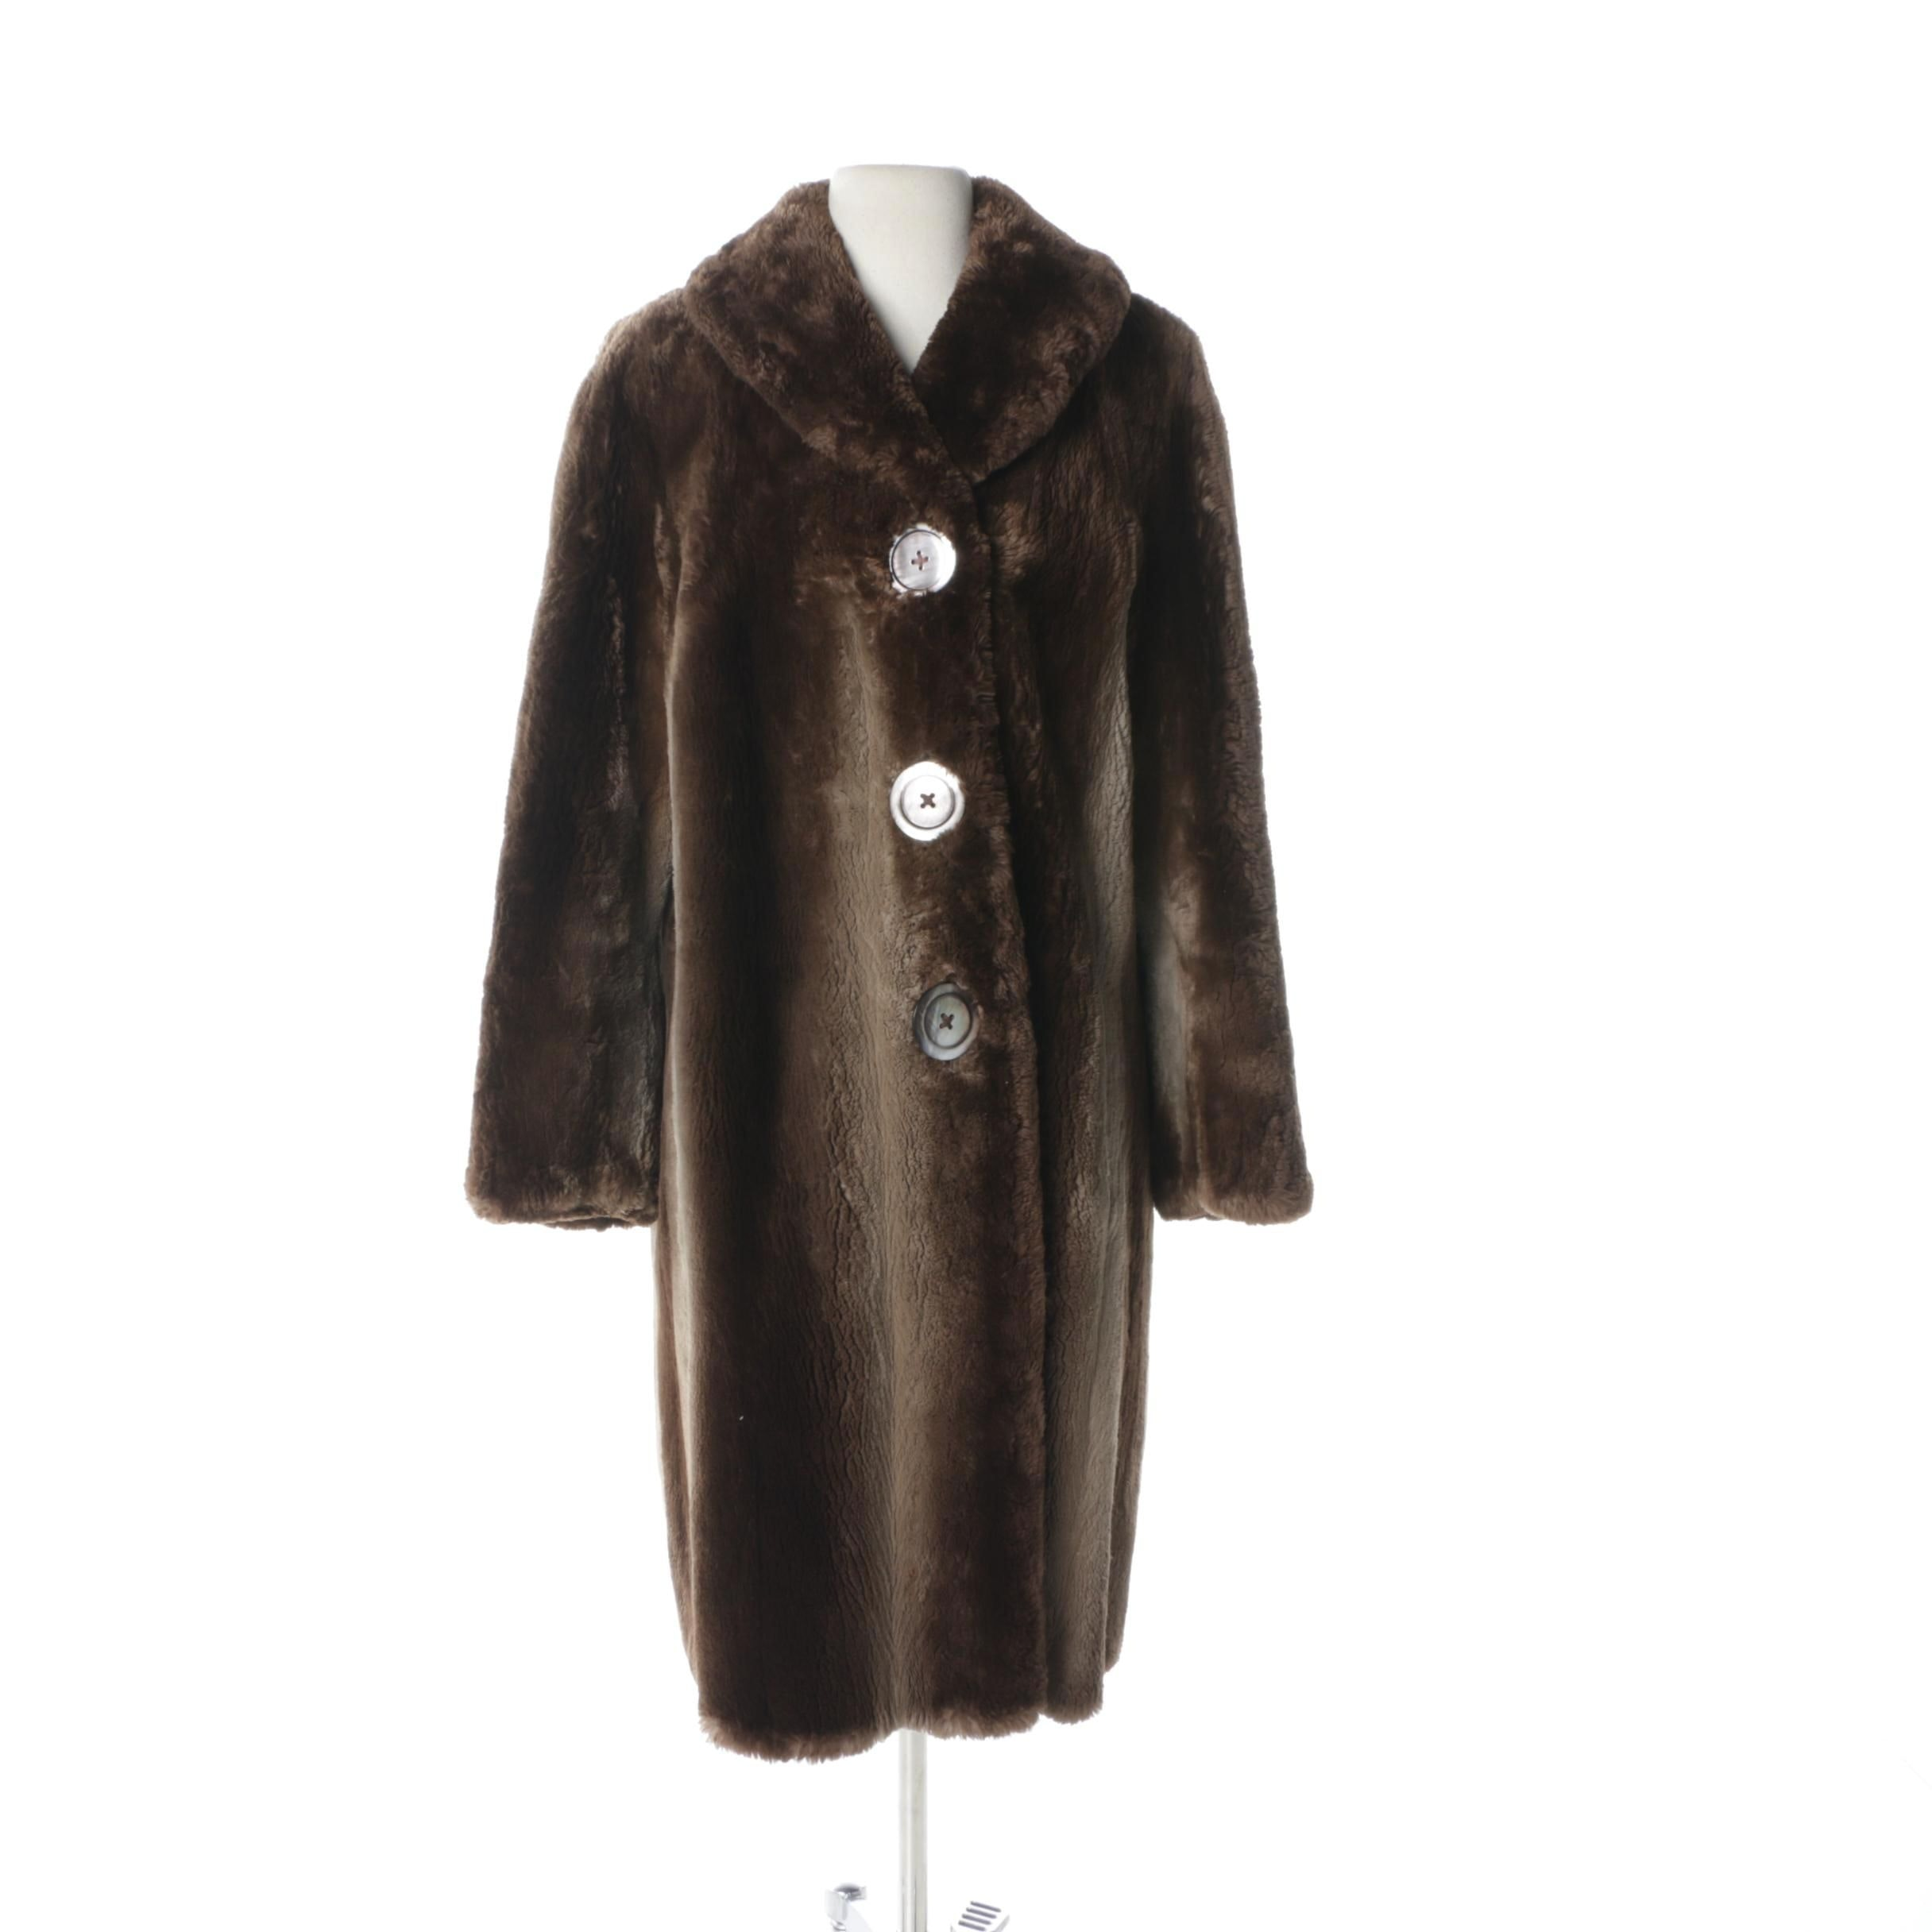 Yudofsky Furriers Sheared Beaver Coat with Mother of Pearl Buttons